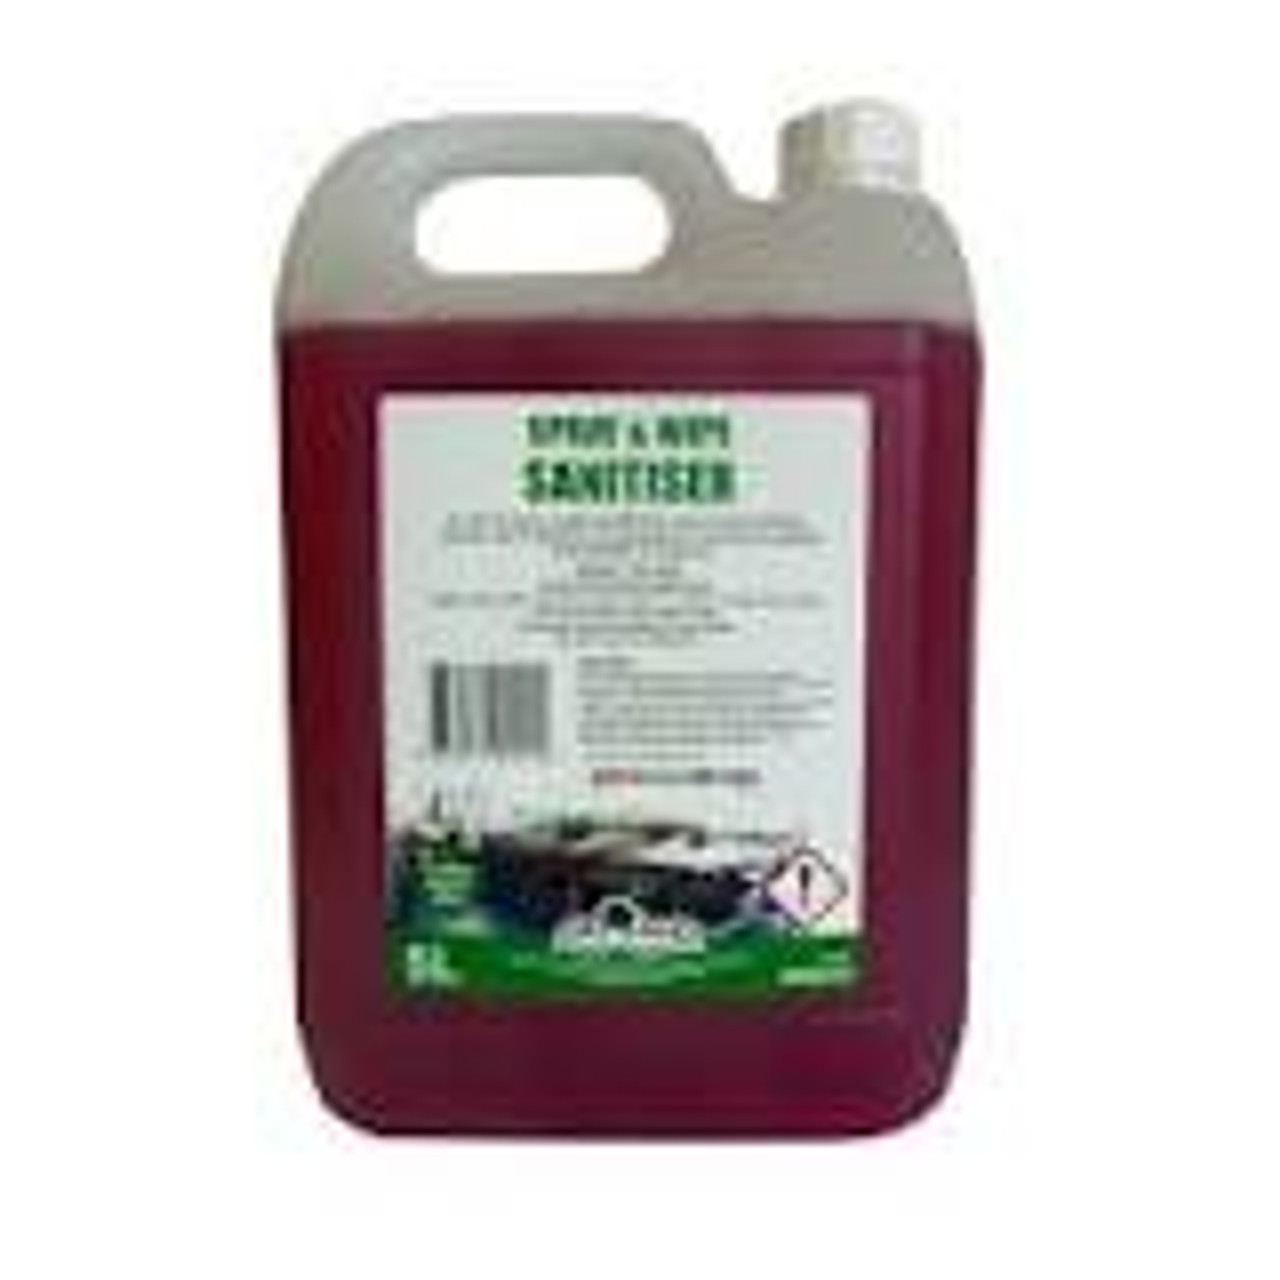 Greylands Spray and Wipe Sanitiser 5 Litre